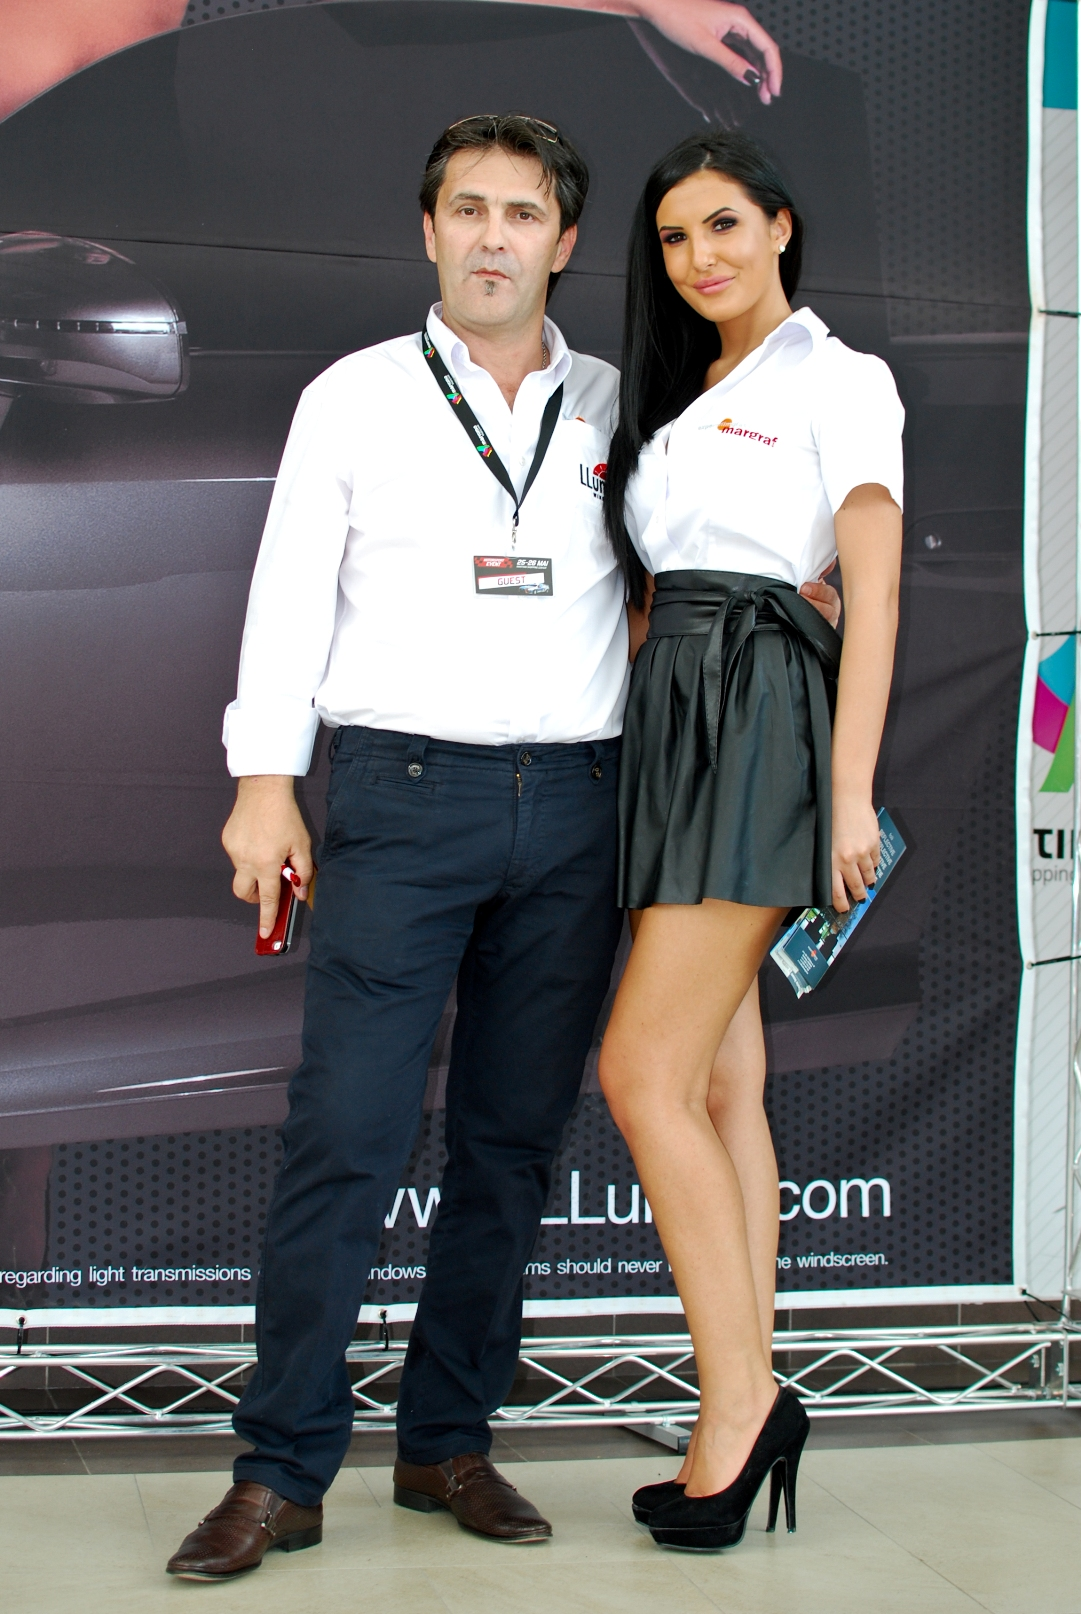 Hostess+Constanta-+Motul+2013+(3).JPG